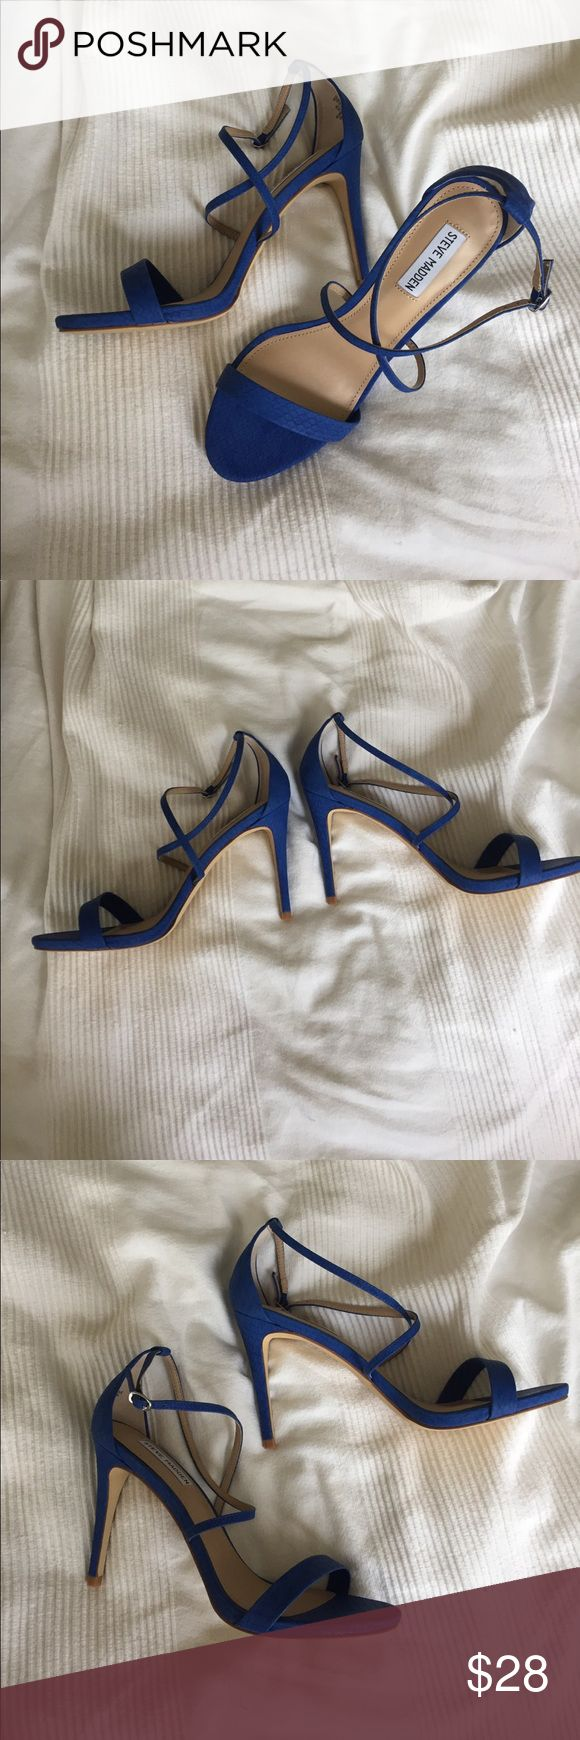 Faux Leather snake cobalt blue strappy high heel Steve madden. 4 inch heel. Faux snake leather. Crisscross straps with adjustable buckle. Cobalt blue. Brand-new with tags. I will include box only if you note that you want it. Steve Madden Shoes Heels